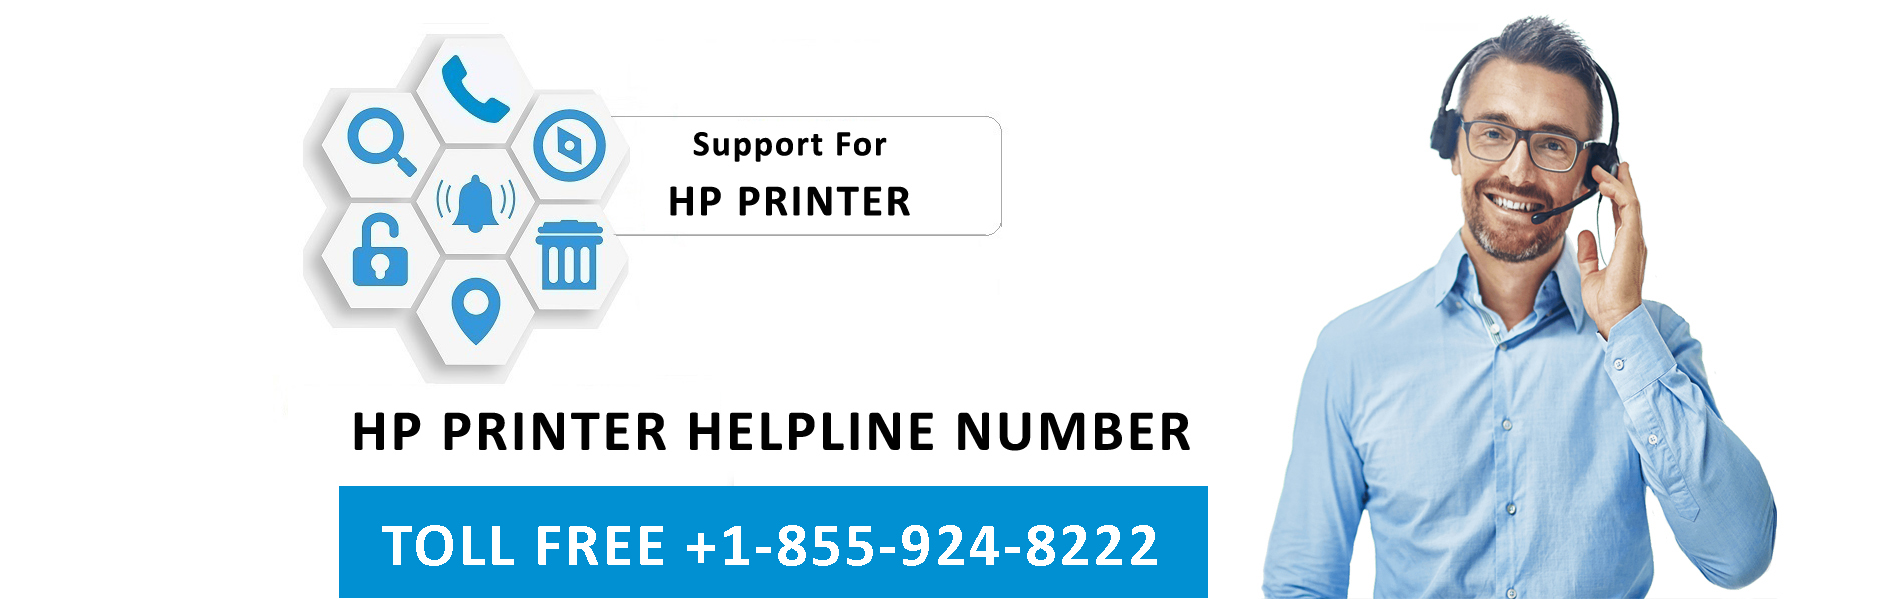 HP Printer Support Phone Number +1-855-924-8222 Printer Support